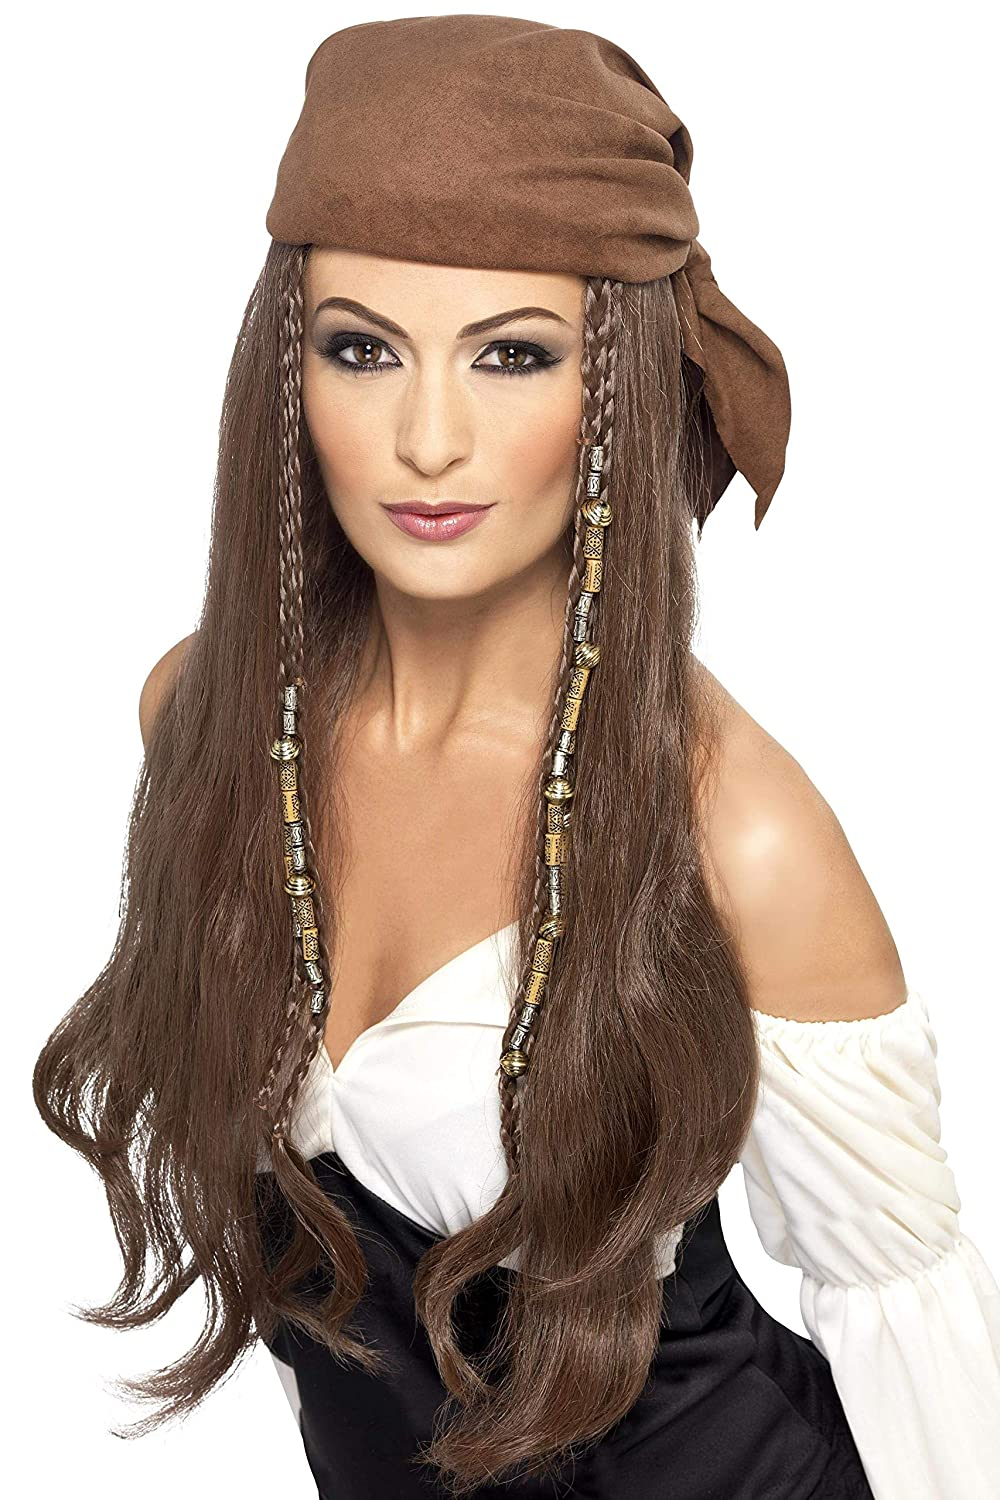 Smiffys Pirate Wig, Brown, One Size RH Smith & Sons LTD 21398